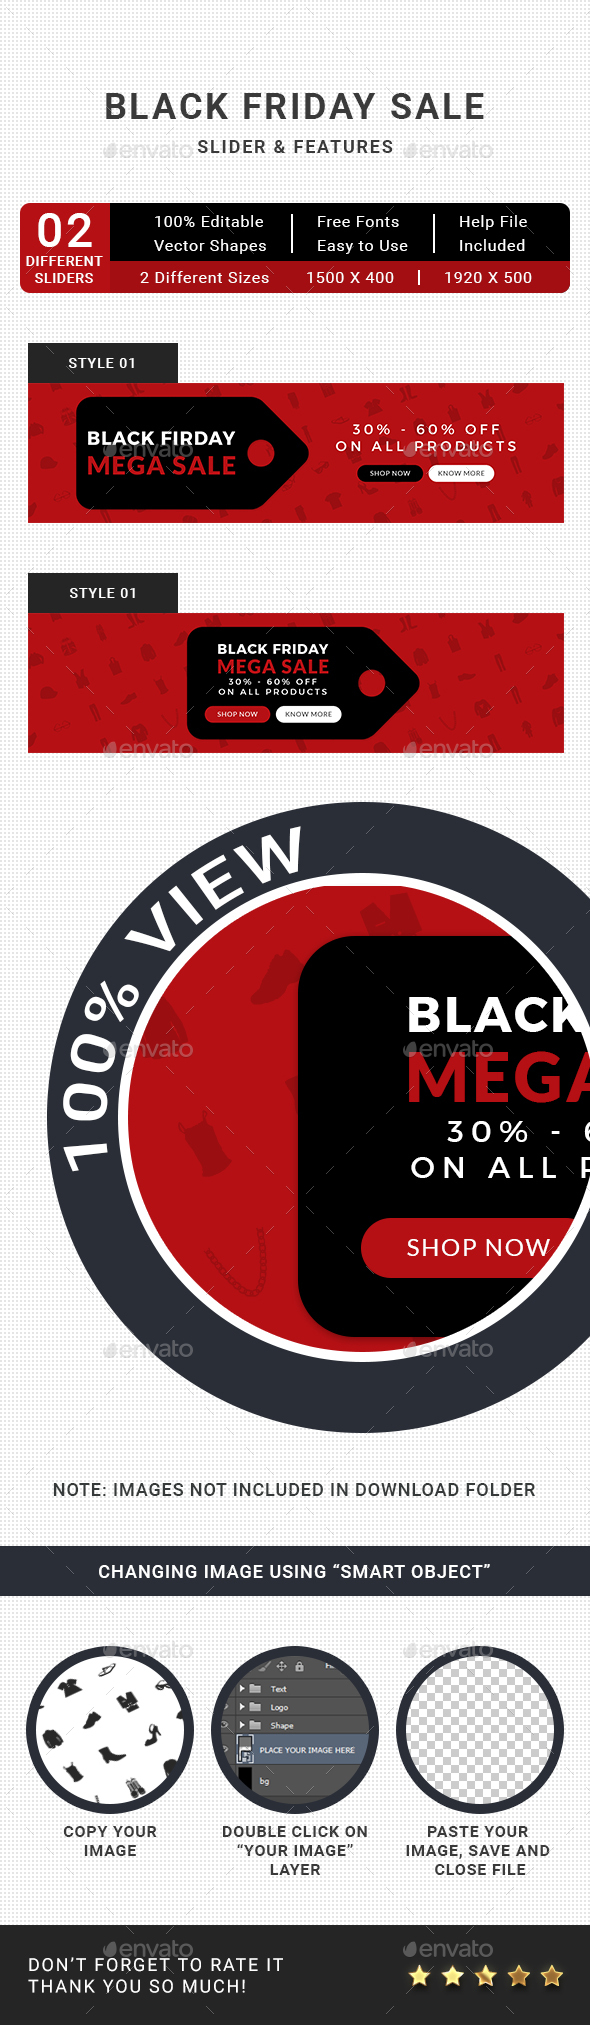 GraphicRiver Black Friday Sale Slider 21060342